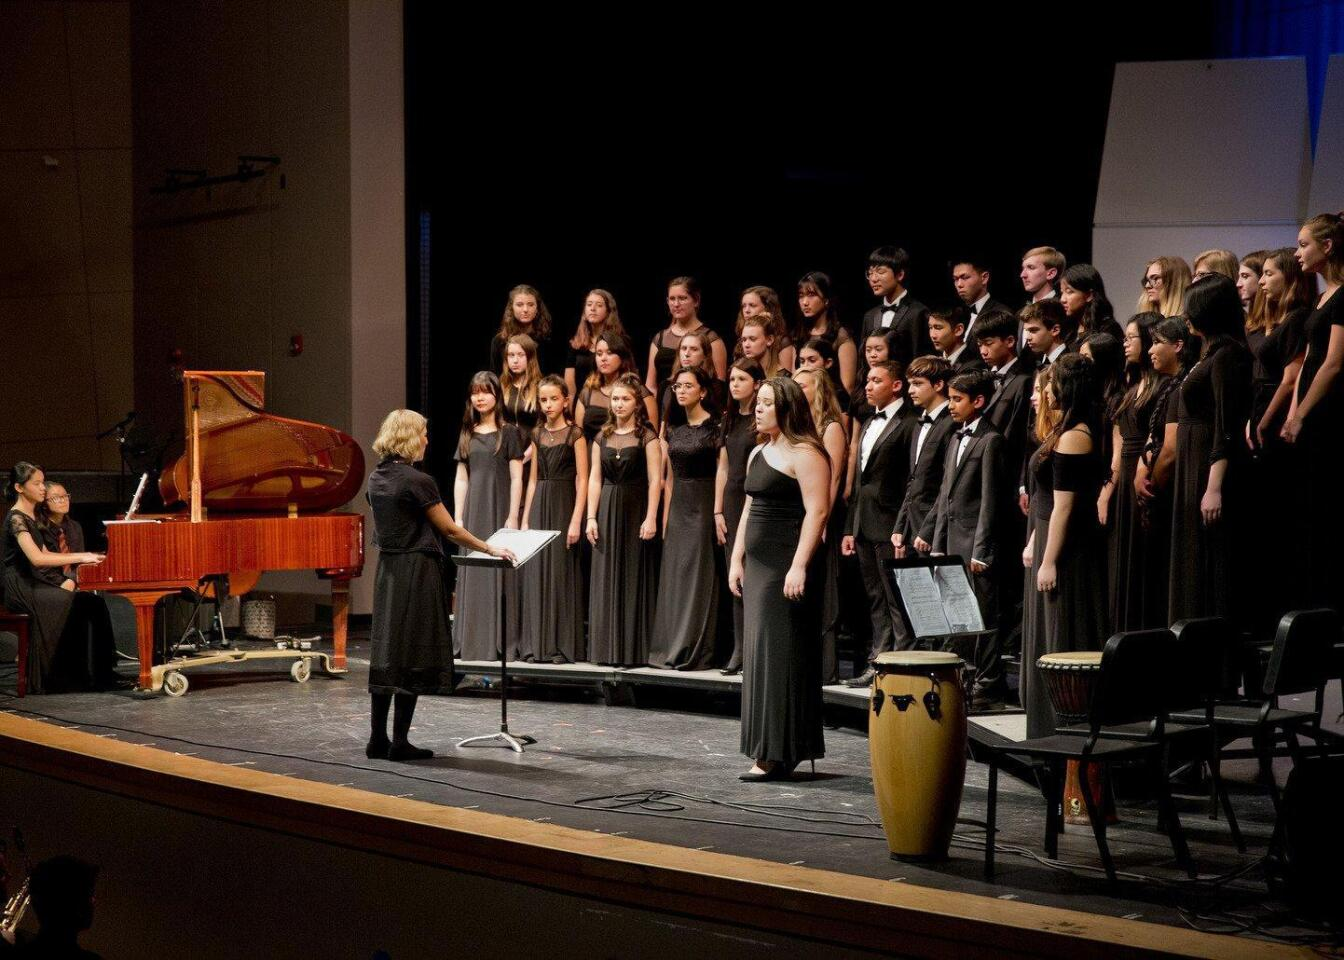 TPHS Chorus under the direction of Amy Gelb